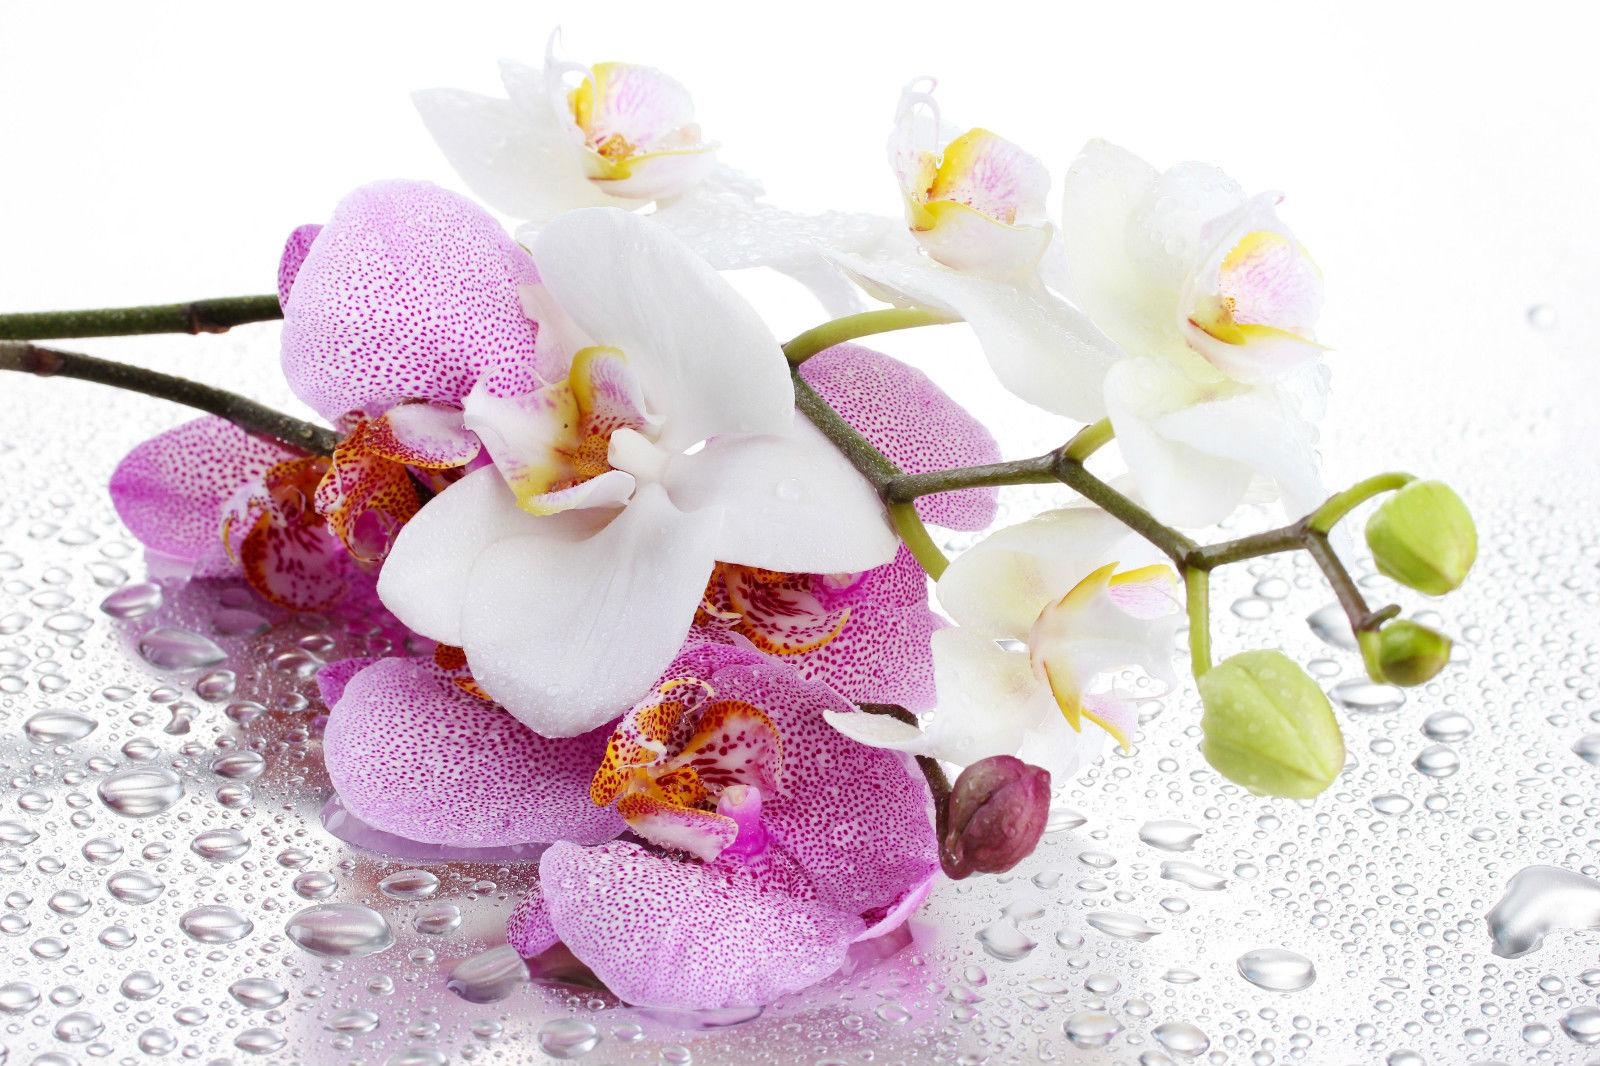 Pink and White Orchid Flowers (Plant Carnation Daisy Rose) Art Silk Print Poster 24x36inch(60x90cm) 045